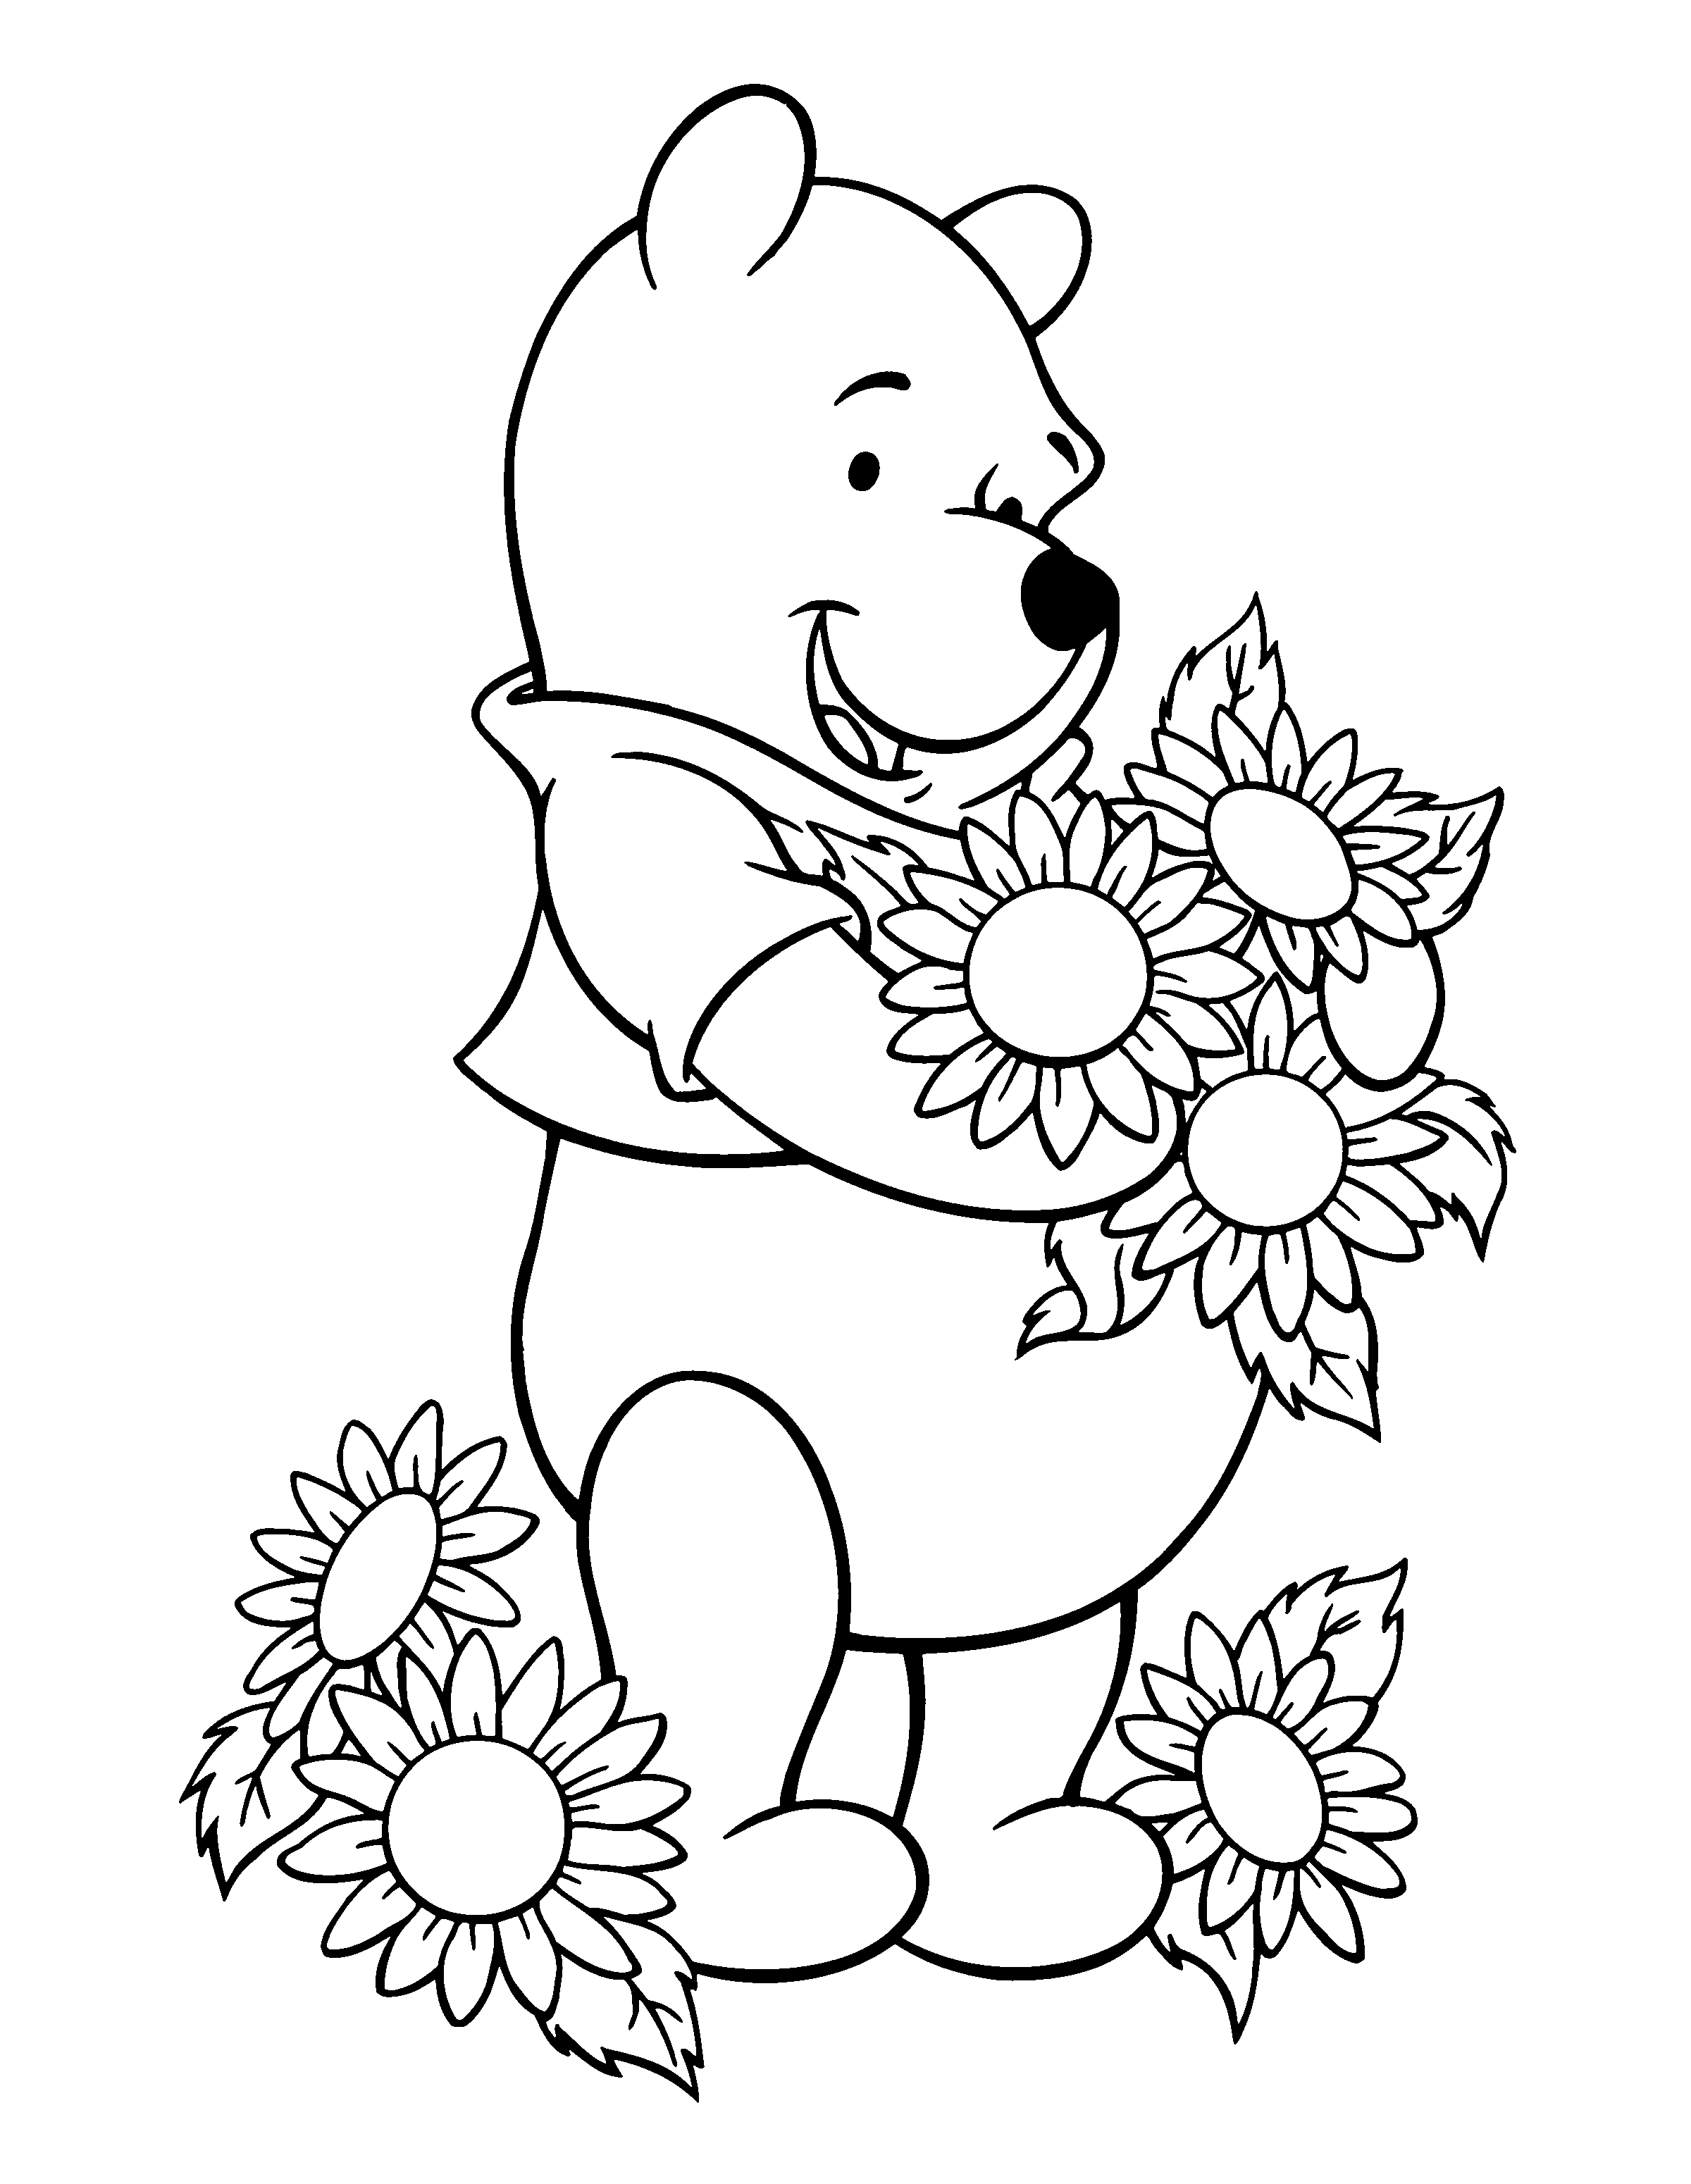 pooh coloring pages - winnie the pooh coloring pages